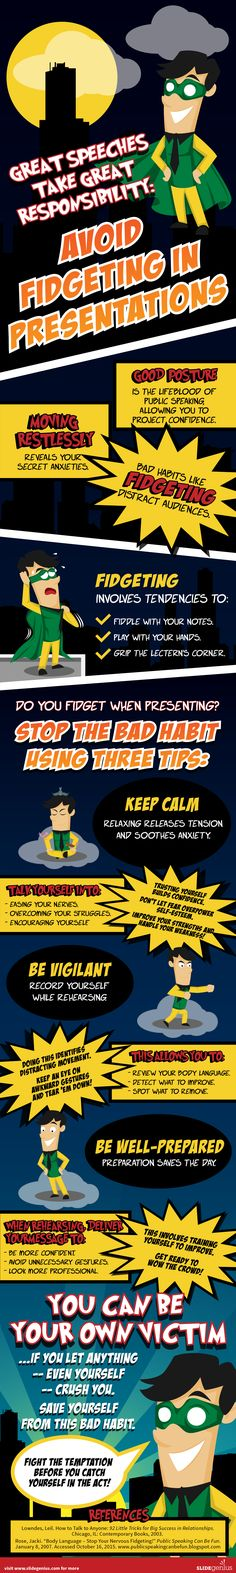 How Does Fidgeting Affect Your Professional Presentation? #Infographic #Business…